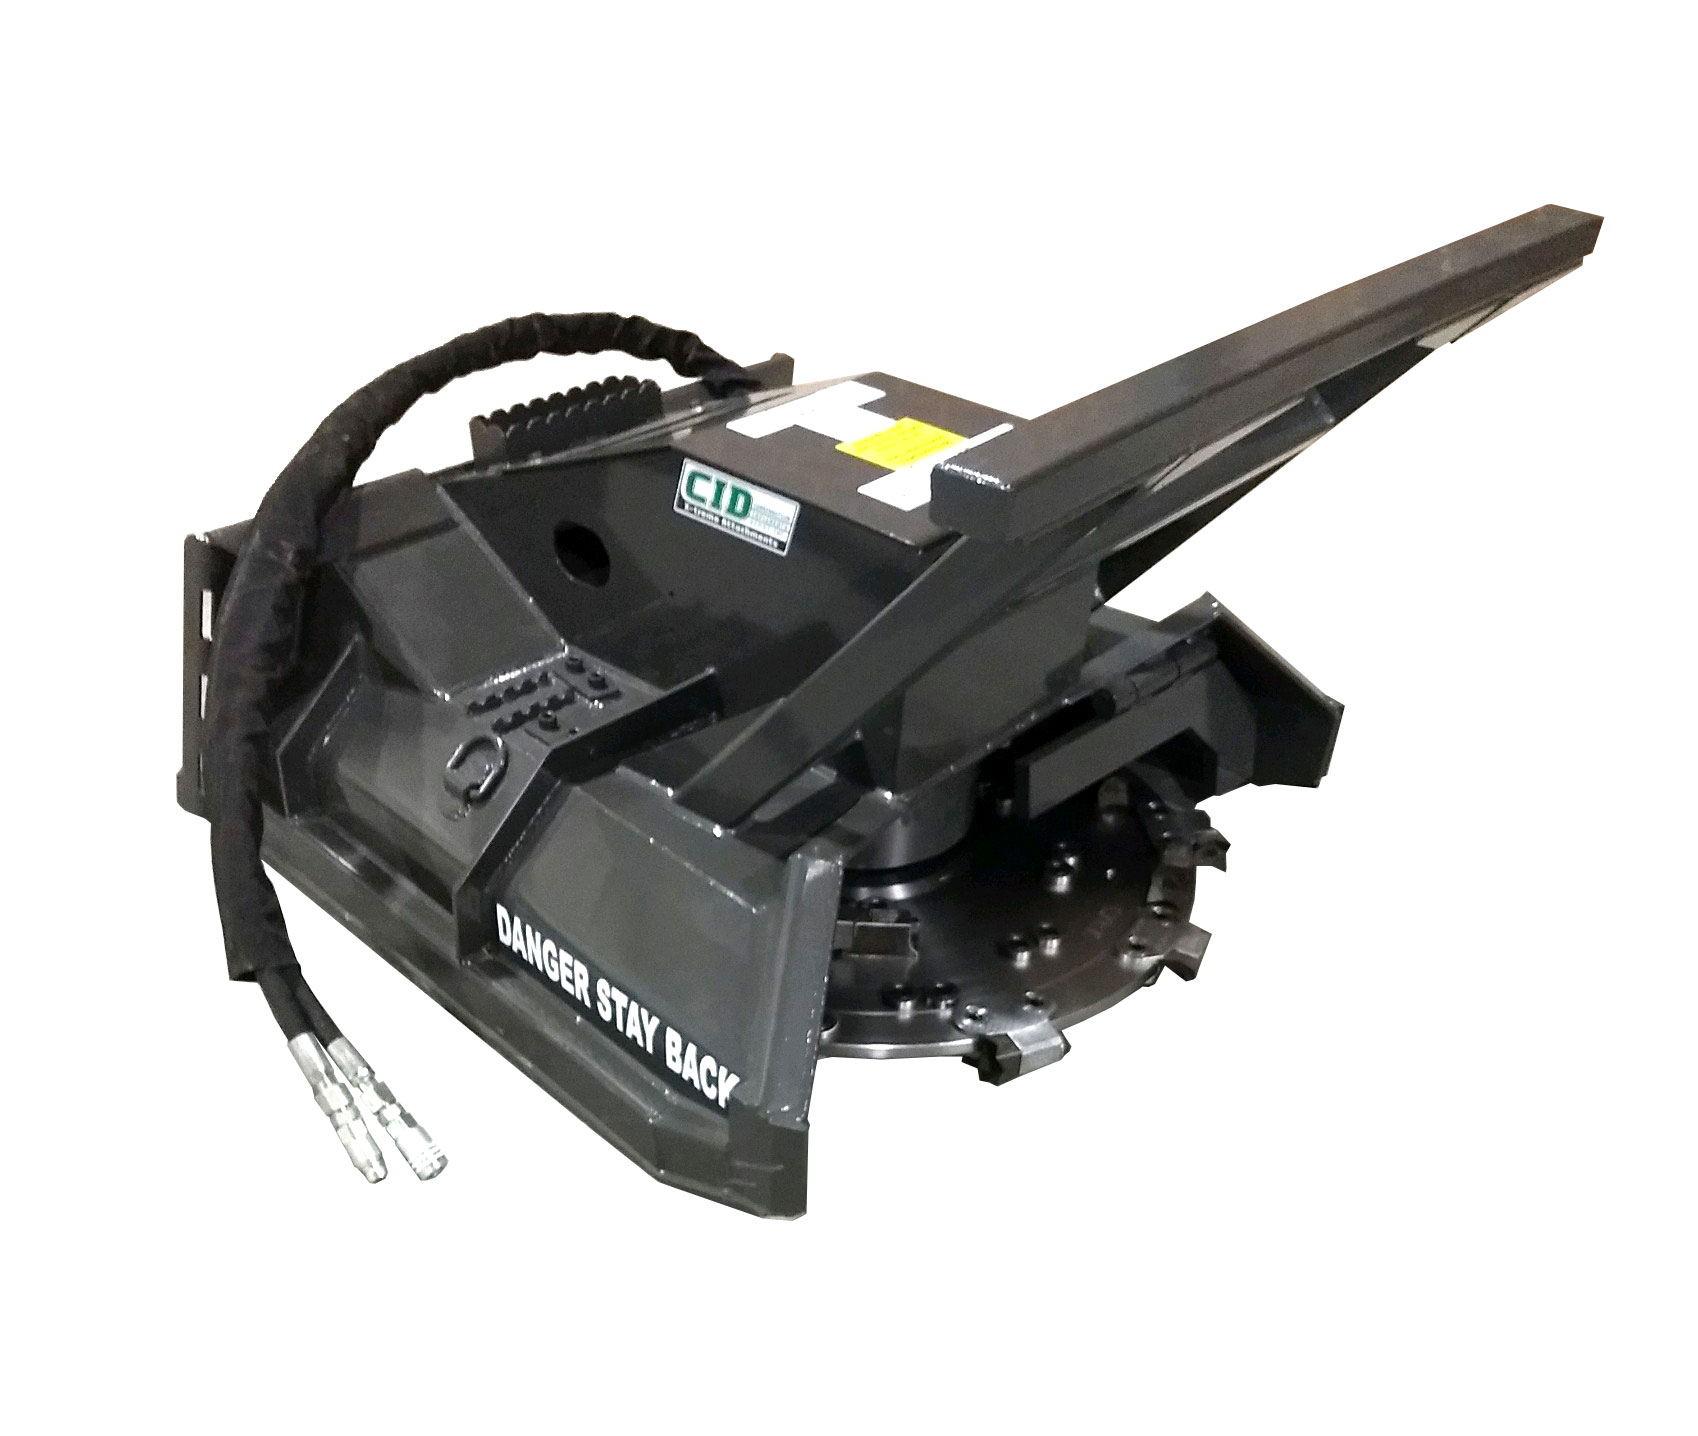 Skid Steer Forestry Disc Mulcher 44 By Cid Attachments